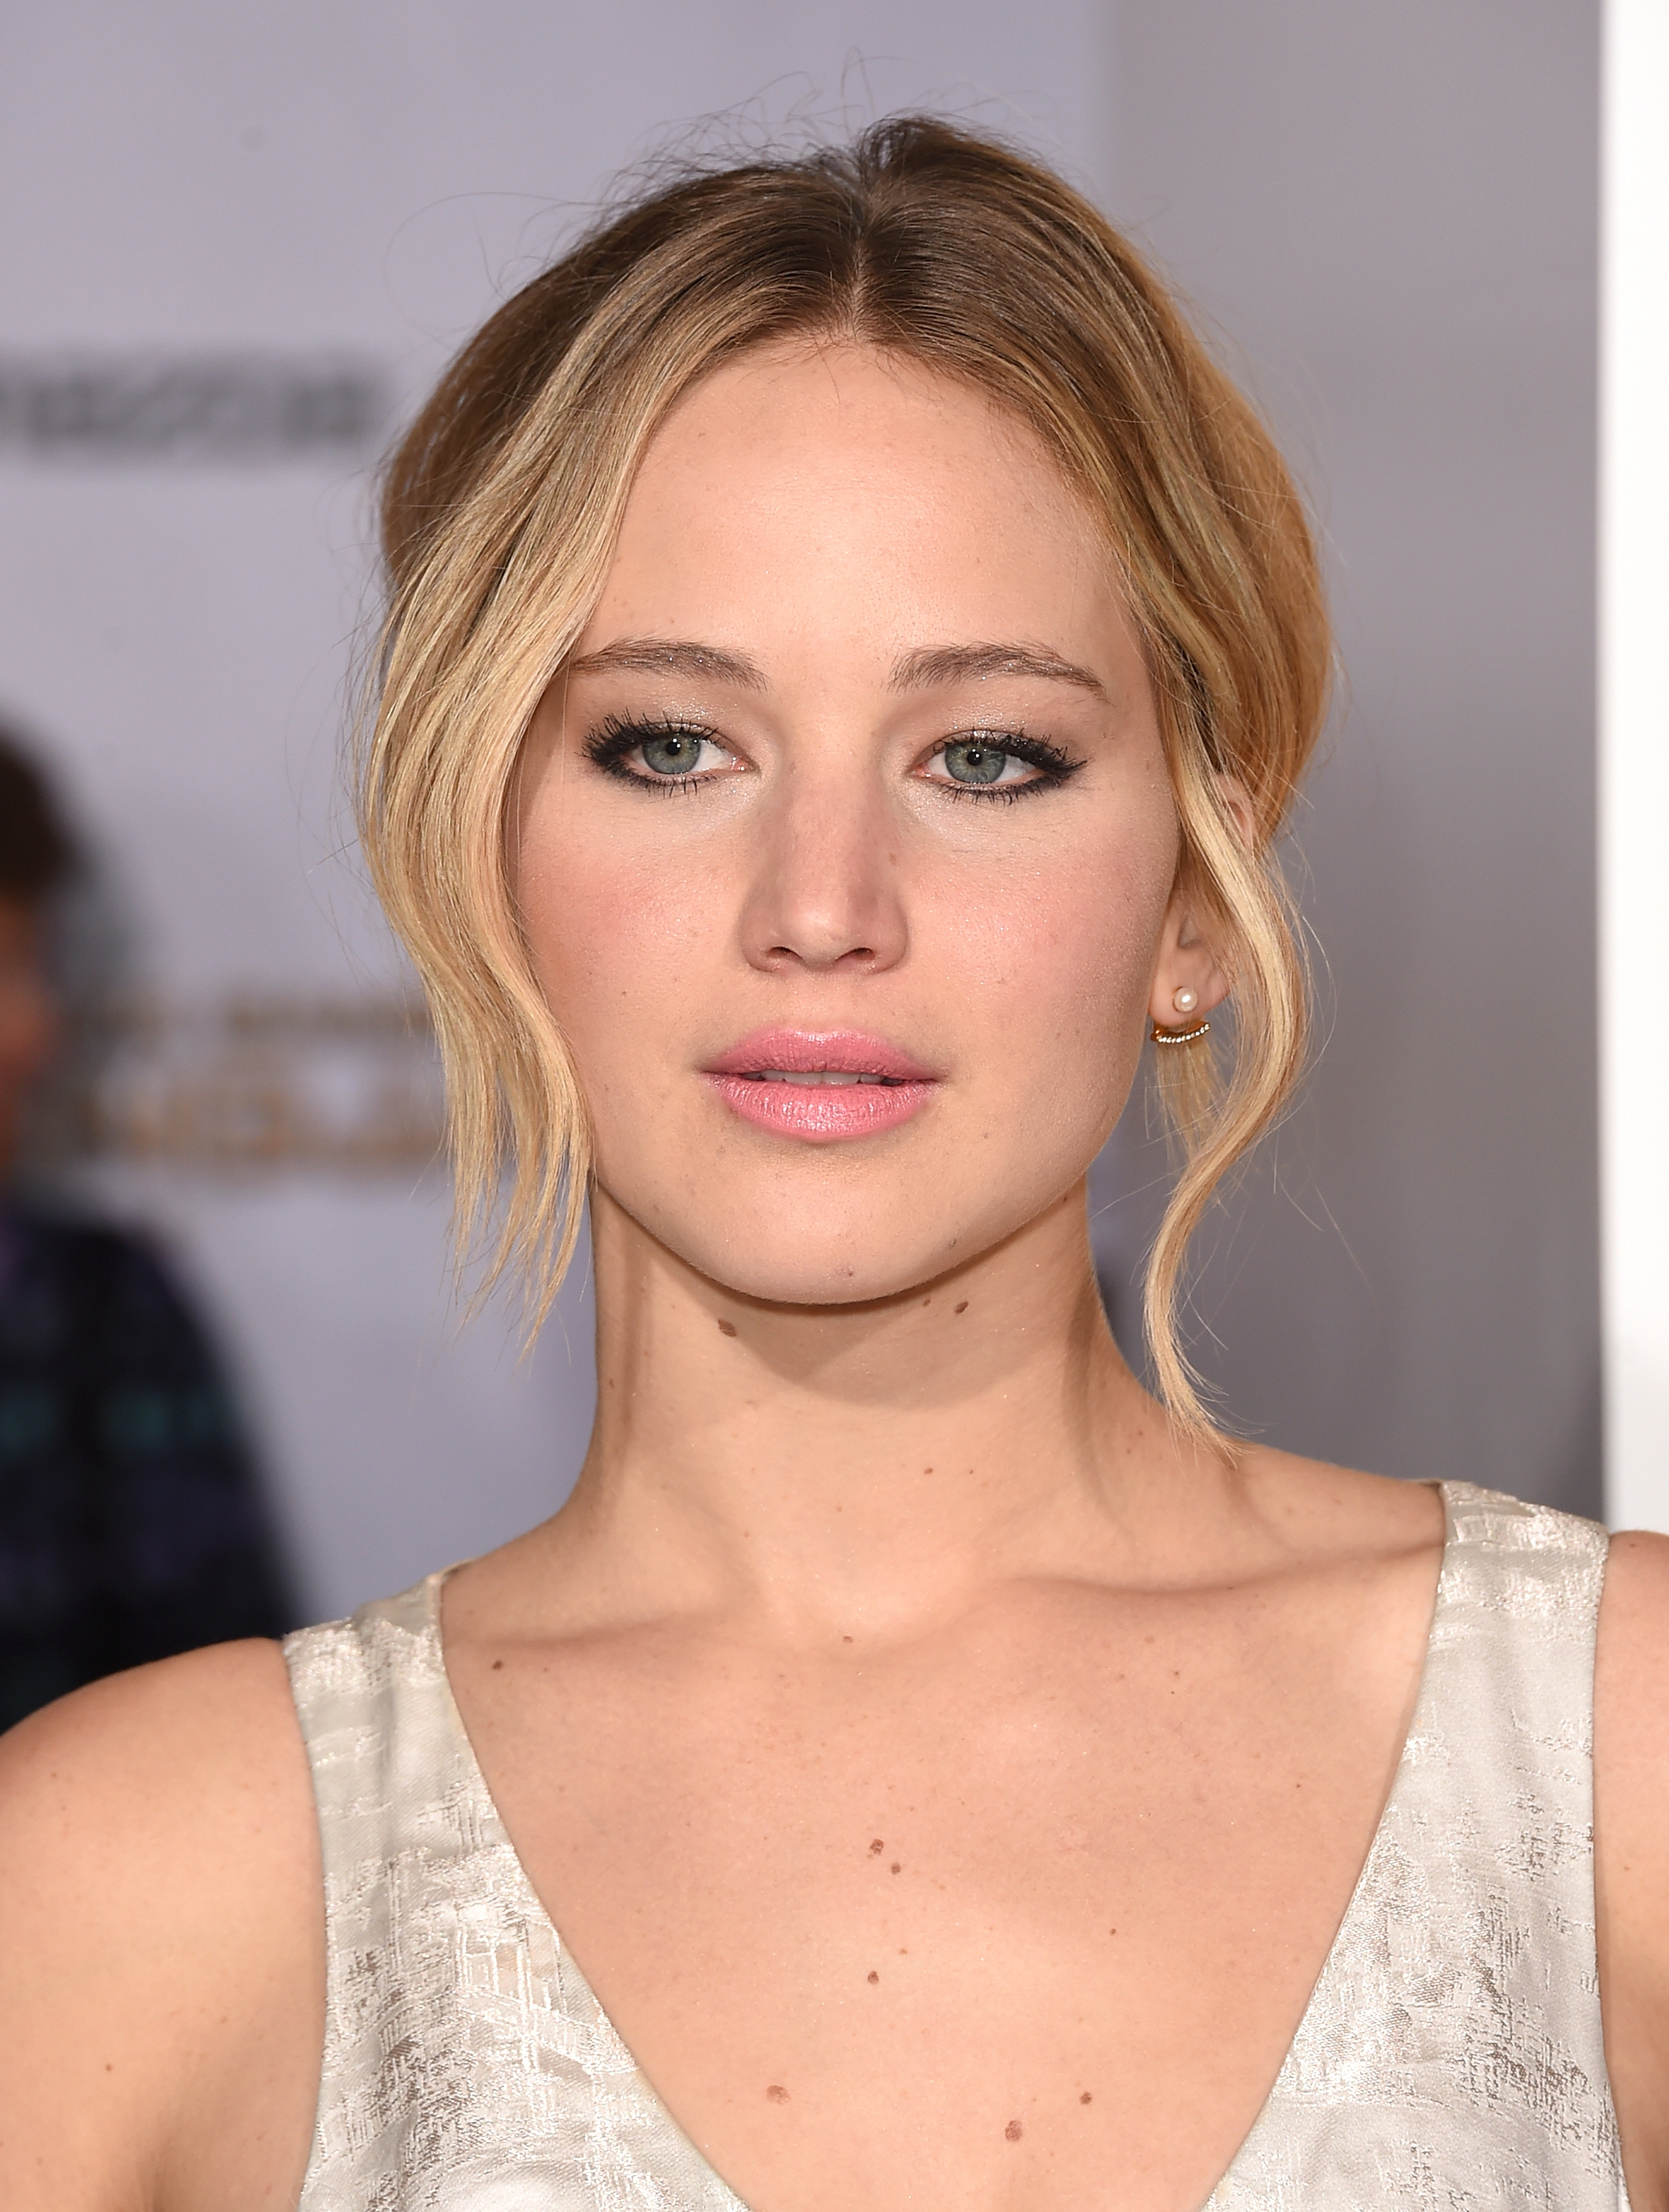 Jennifer Lawrence attends the premiere of 'The Hunger Games: Mockingjay - Part 1' on Nov. 17, 2014 in Los Angeles, California.